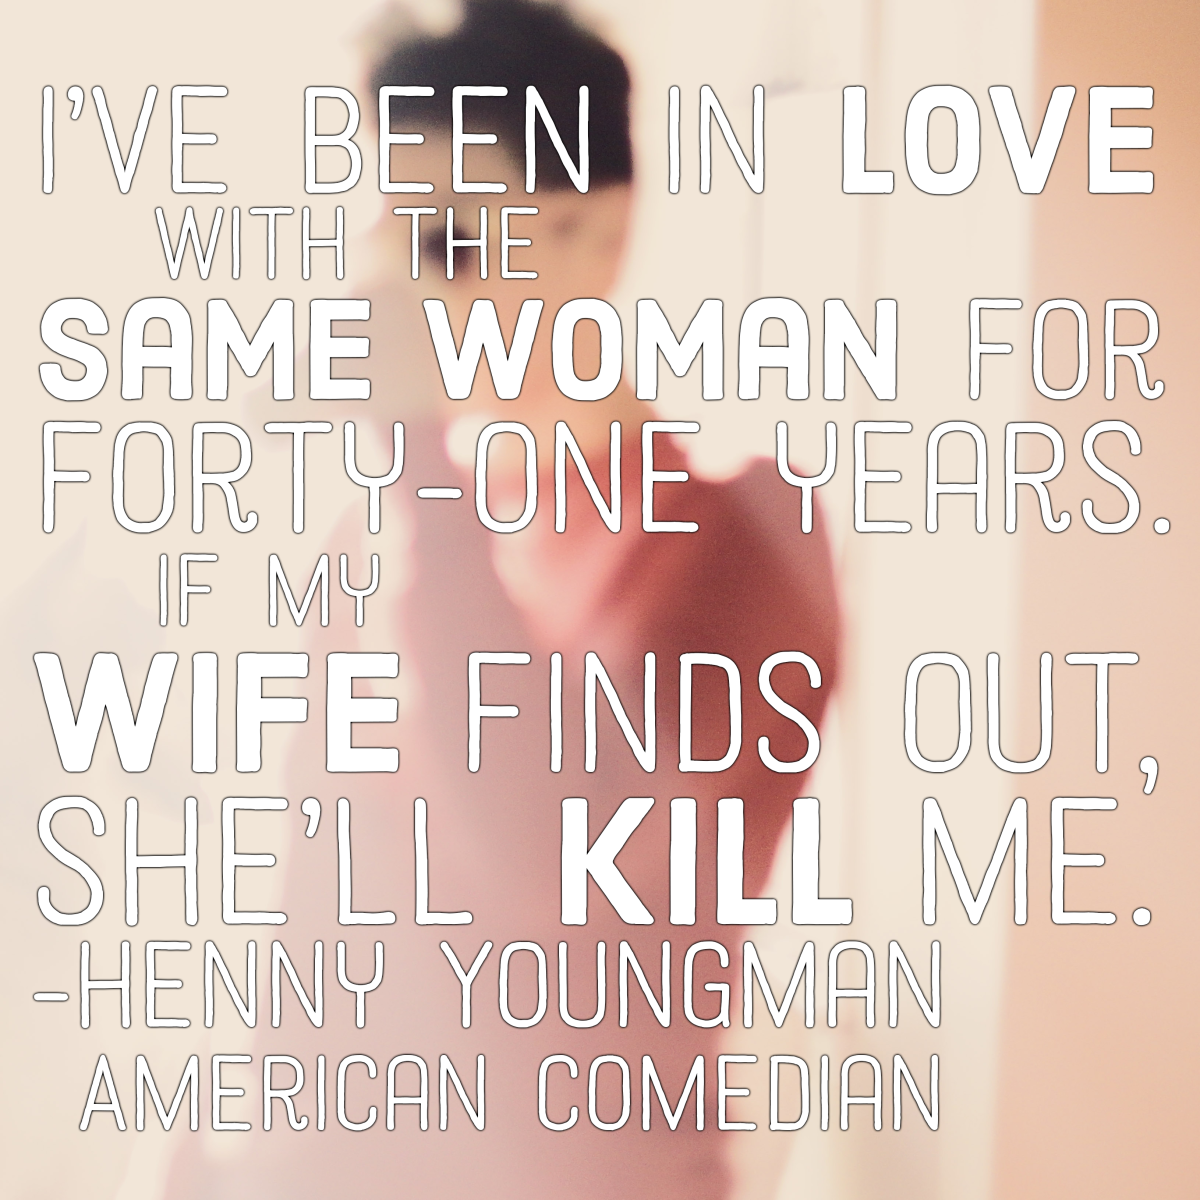 """I've been in love with the same woman for forty-one years. If my wife finds out, she'll kill me."" - Henny Youngman, American comedian"